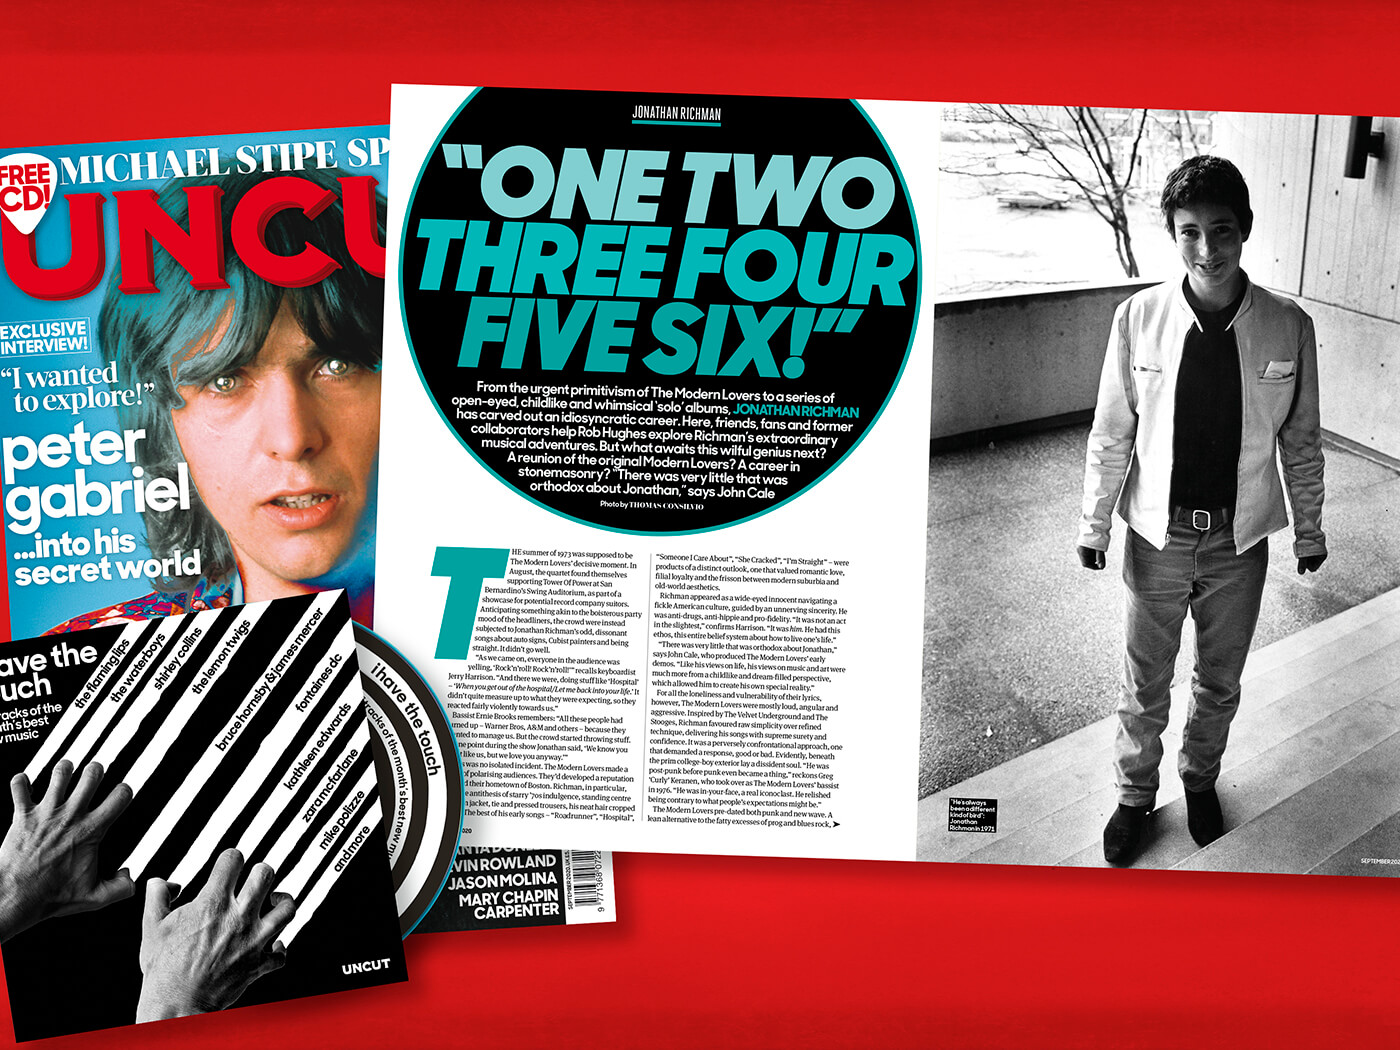 """John Cale on Jonathan Richman: """"He created his own special reality"""" 